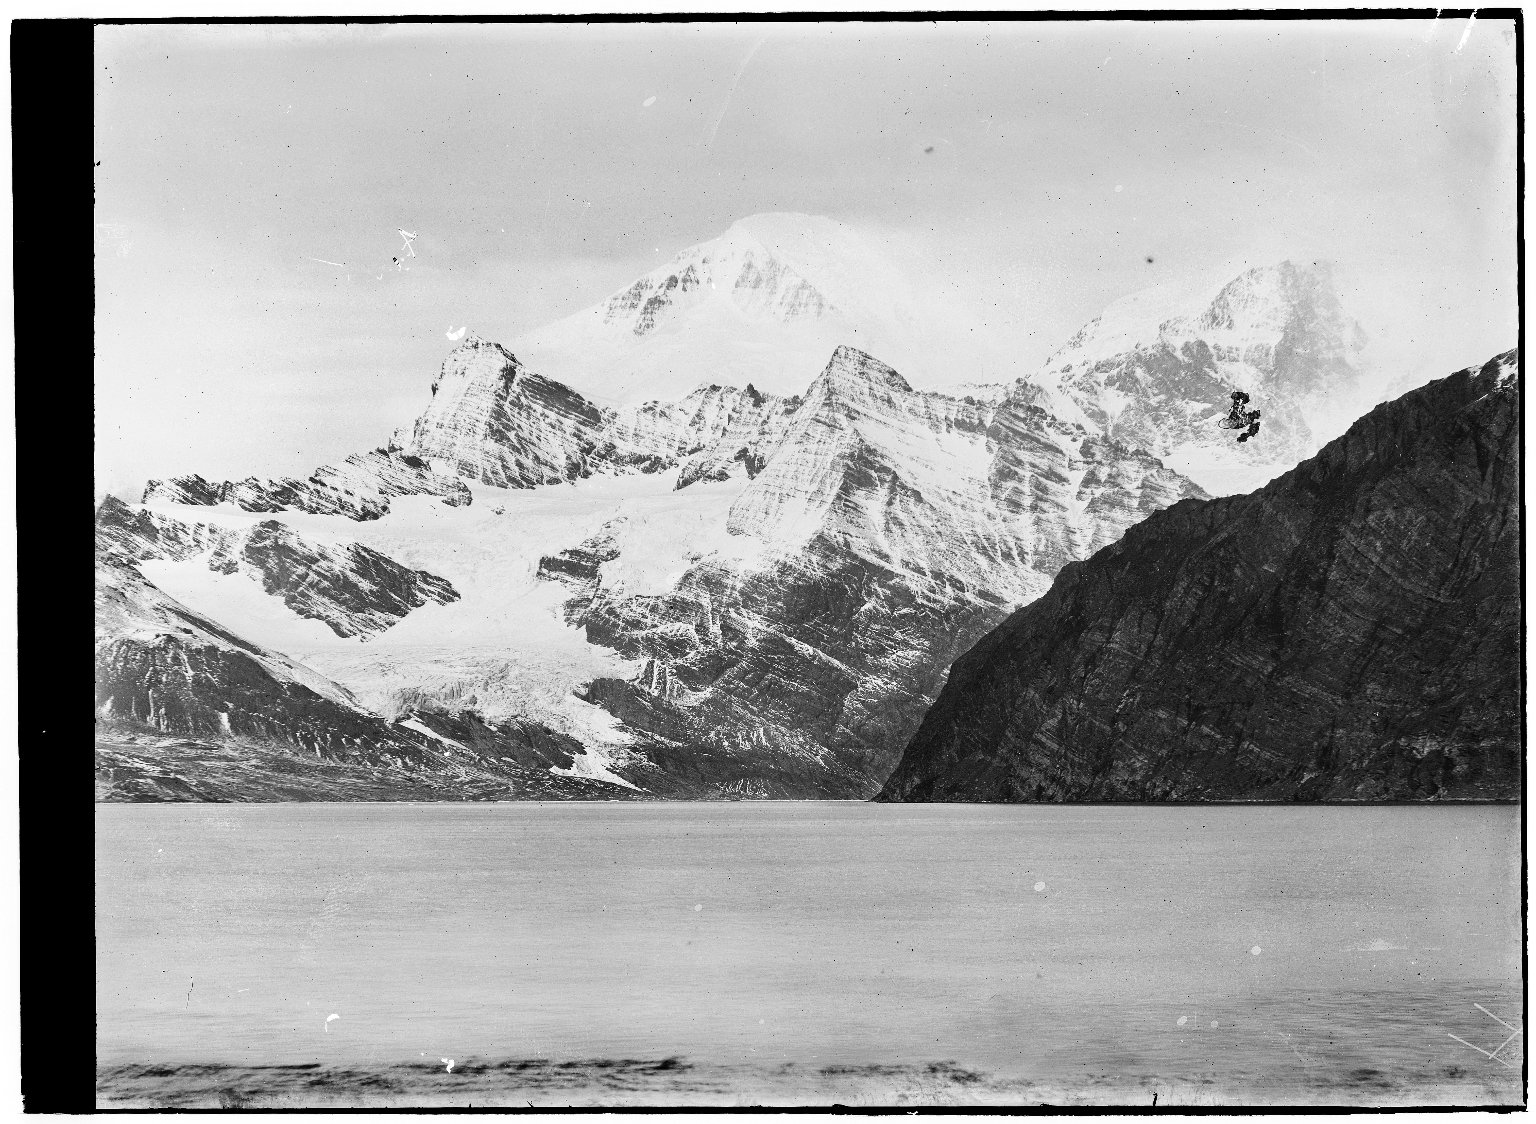 Prospecting Cruise to South Georgia and Antartica, 1913-14, P.032